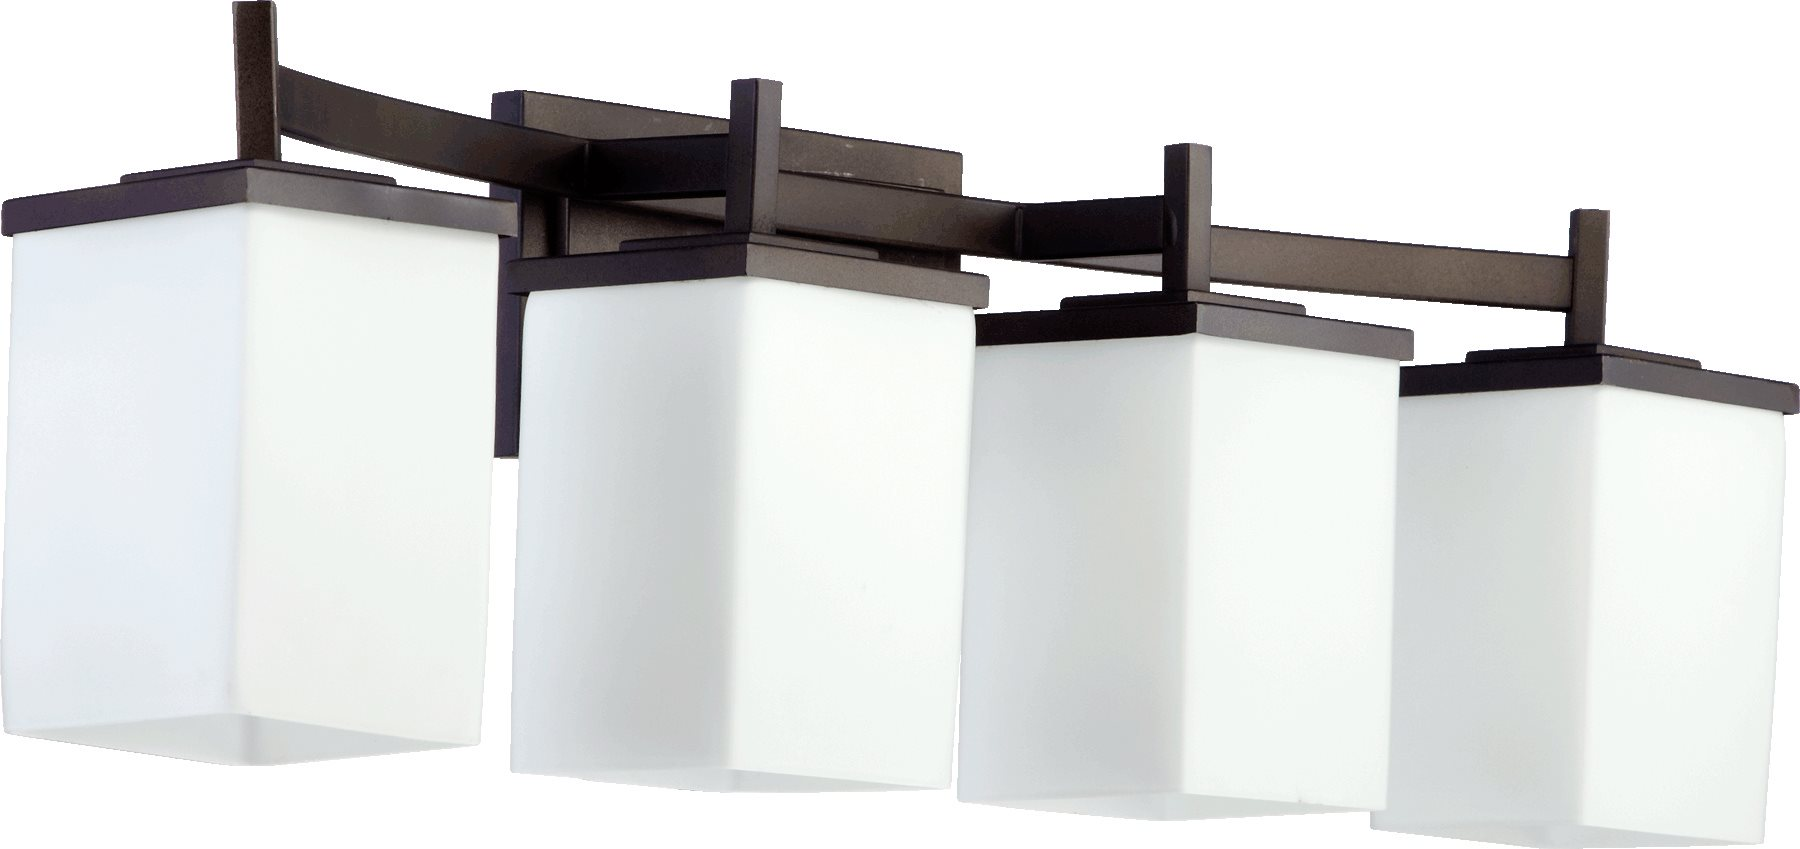 Delta Bathroom Vanity Lights : Delta Modern / Contemporary Bathroom / Vanity Light - XRQ-68-4-4805